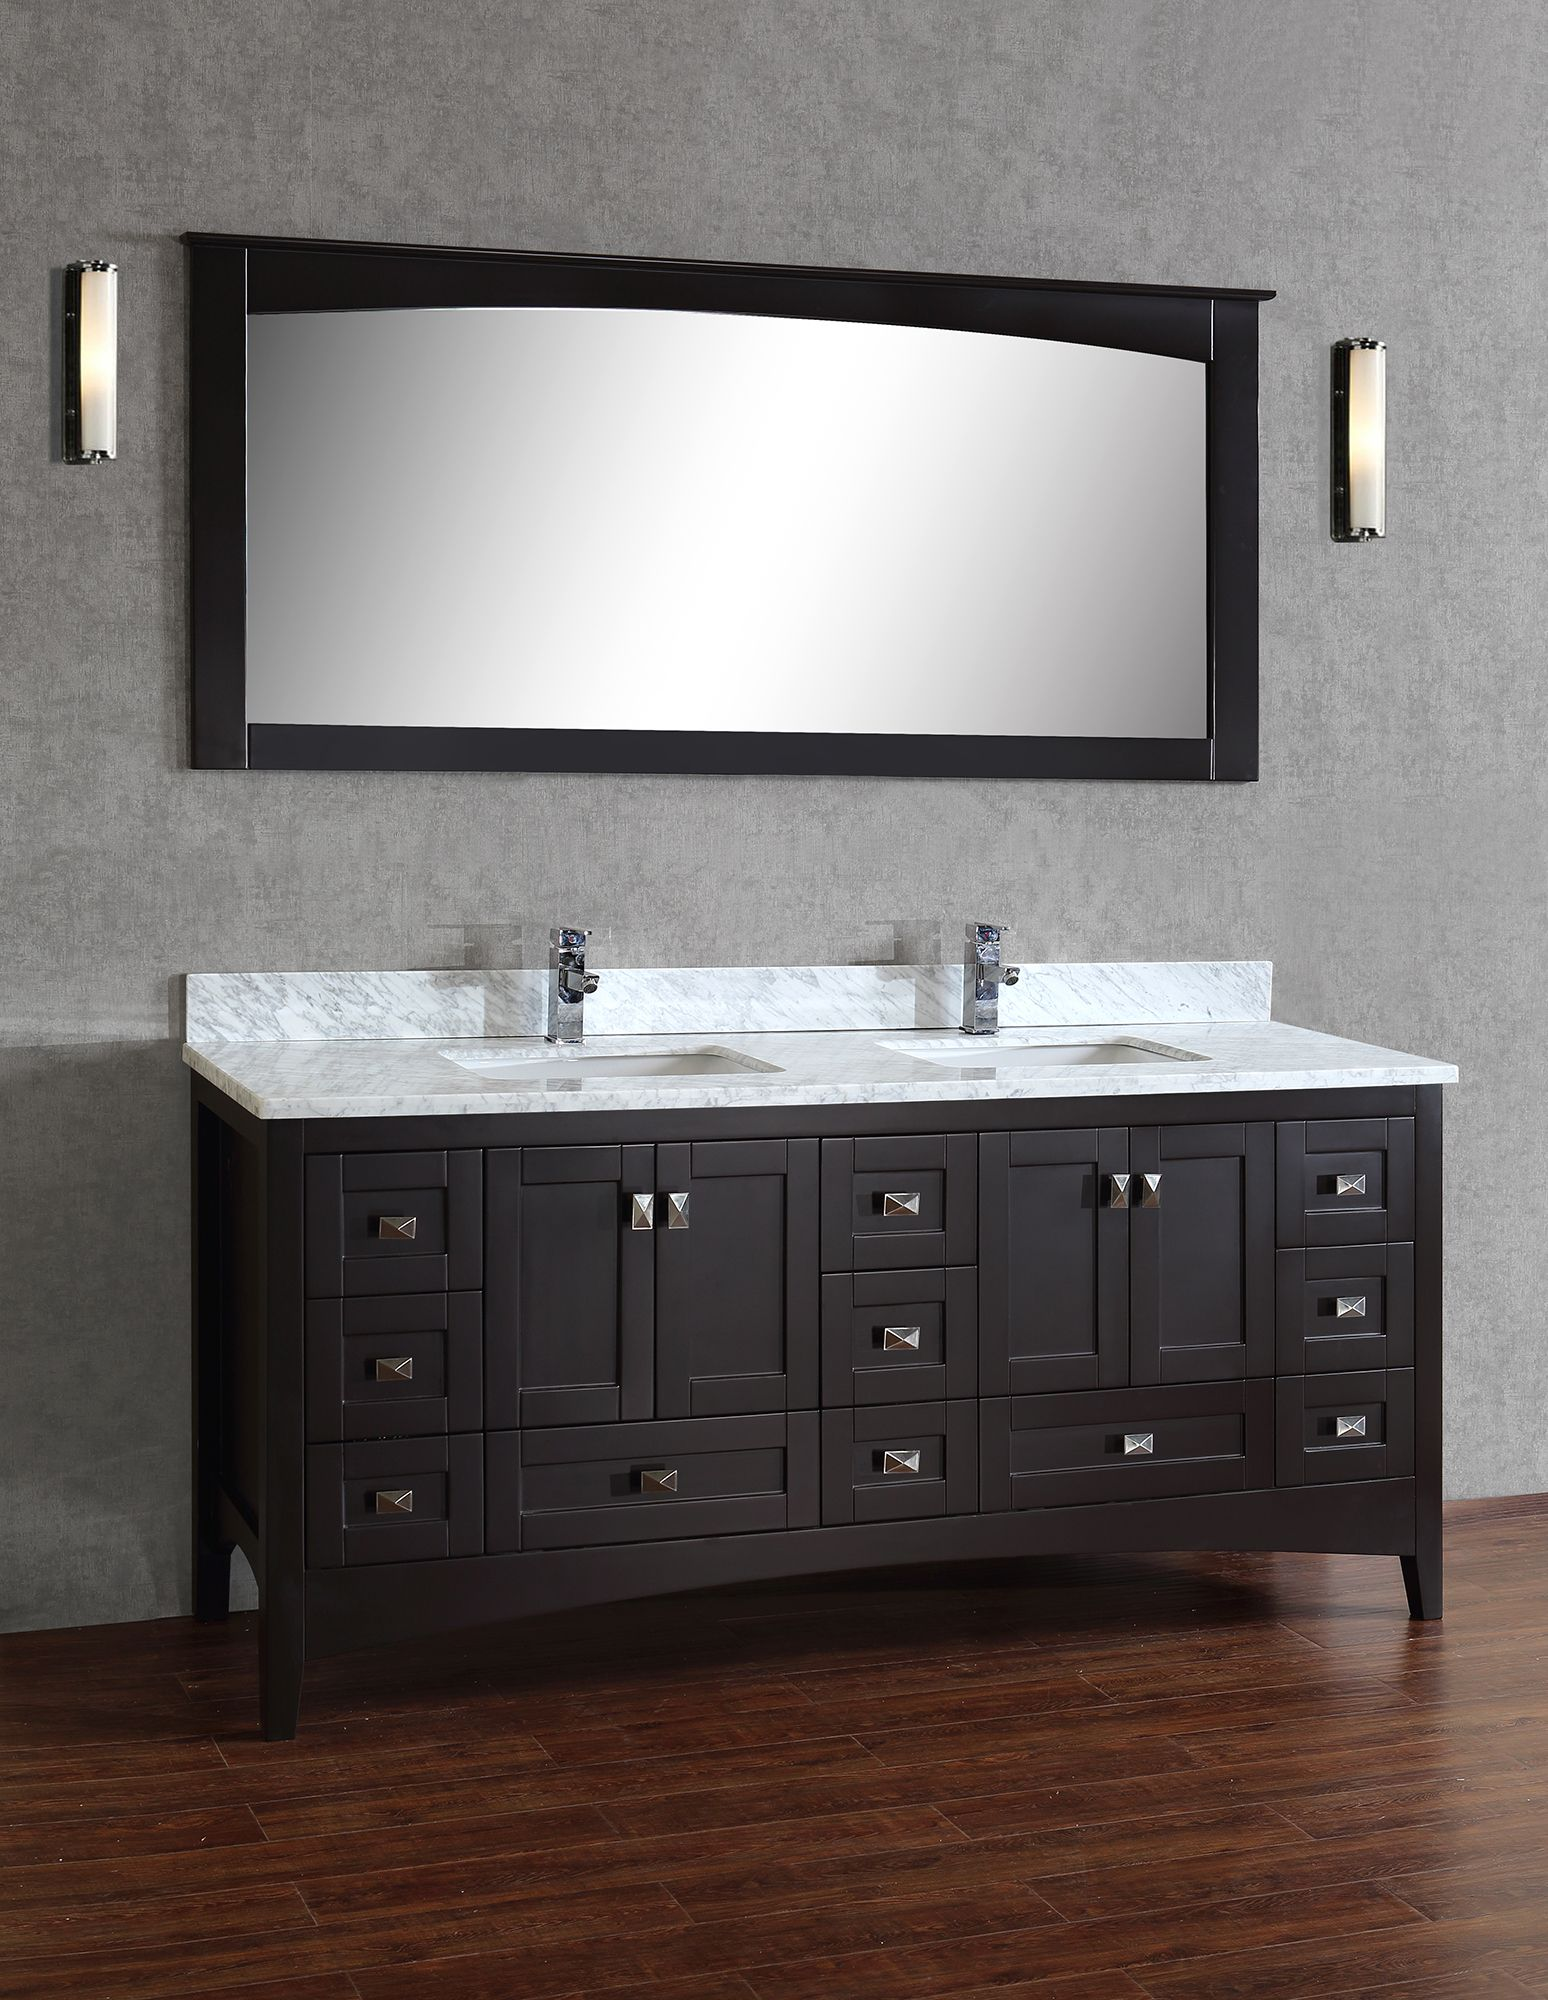 Accara 36 bathroom vanity with drawers espresso w - Yorkton 72 Bathroom Vanity Espresso Home Decor Store Toronto And Gta York Taps